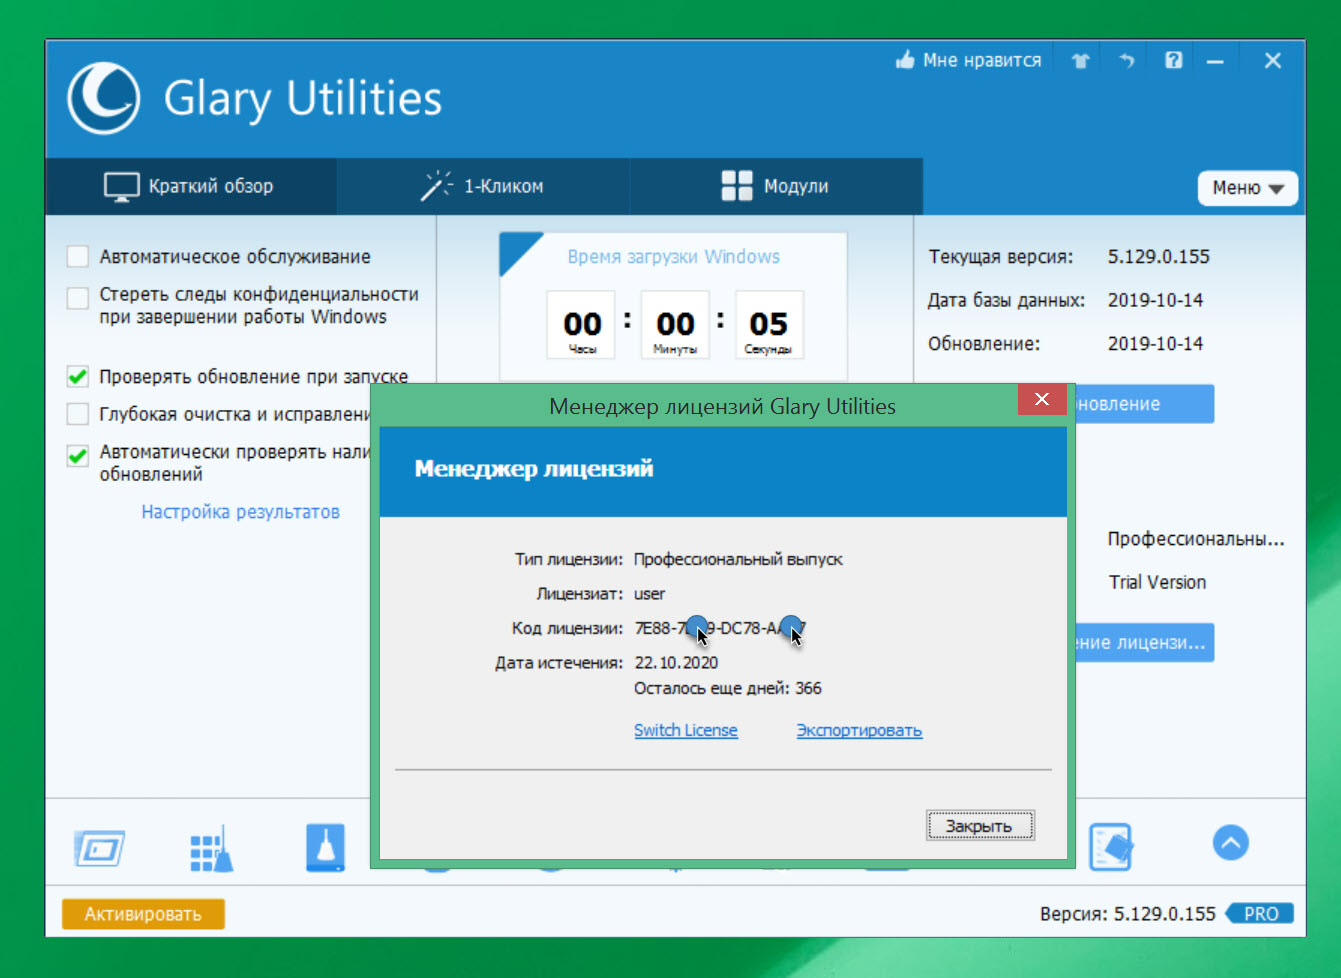 Glary Utilities Pro v.5.129.0.155 key up to 25.03.2021